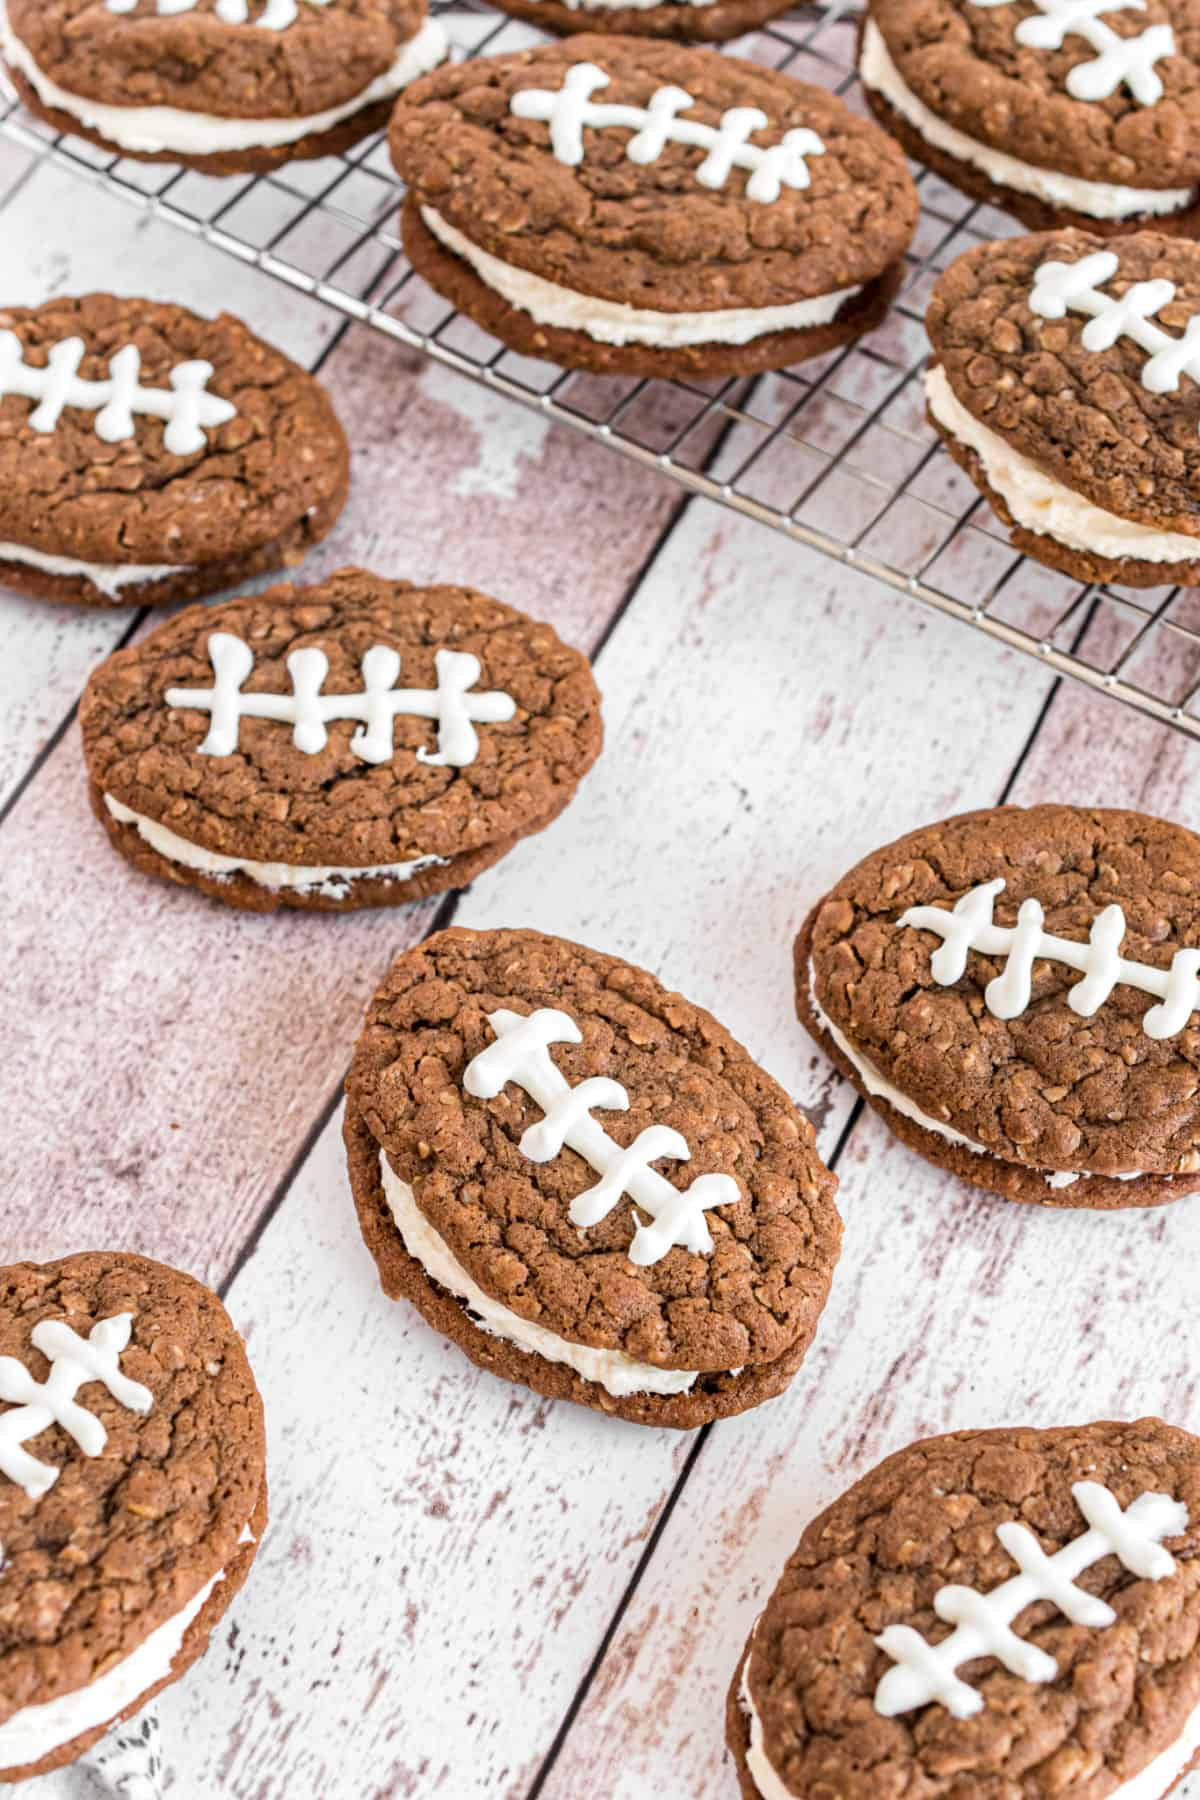 Little debbie homemade chocolate oatmeal cream pies with icing to resemble footballs.